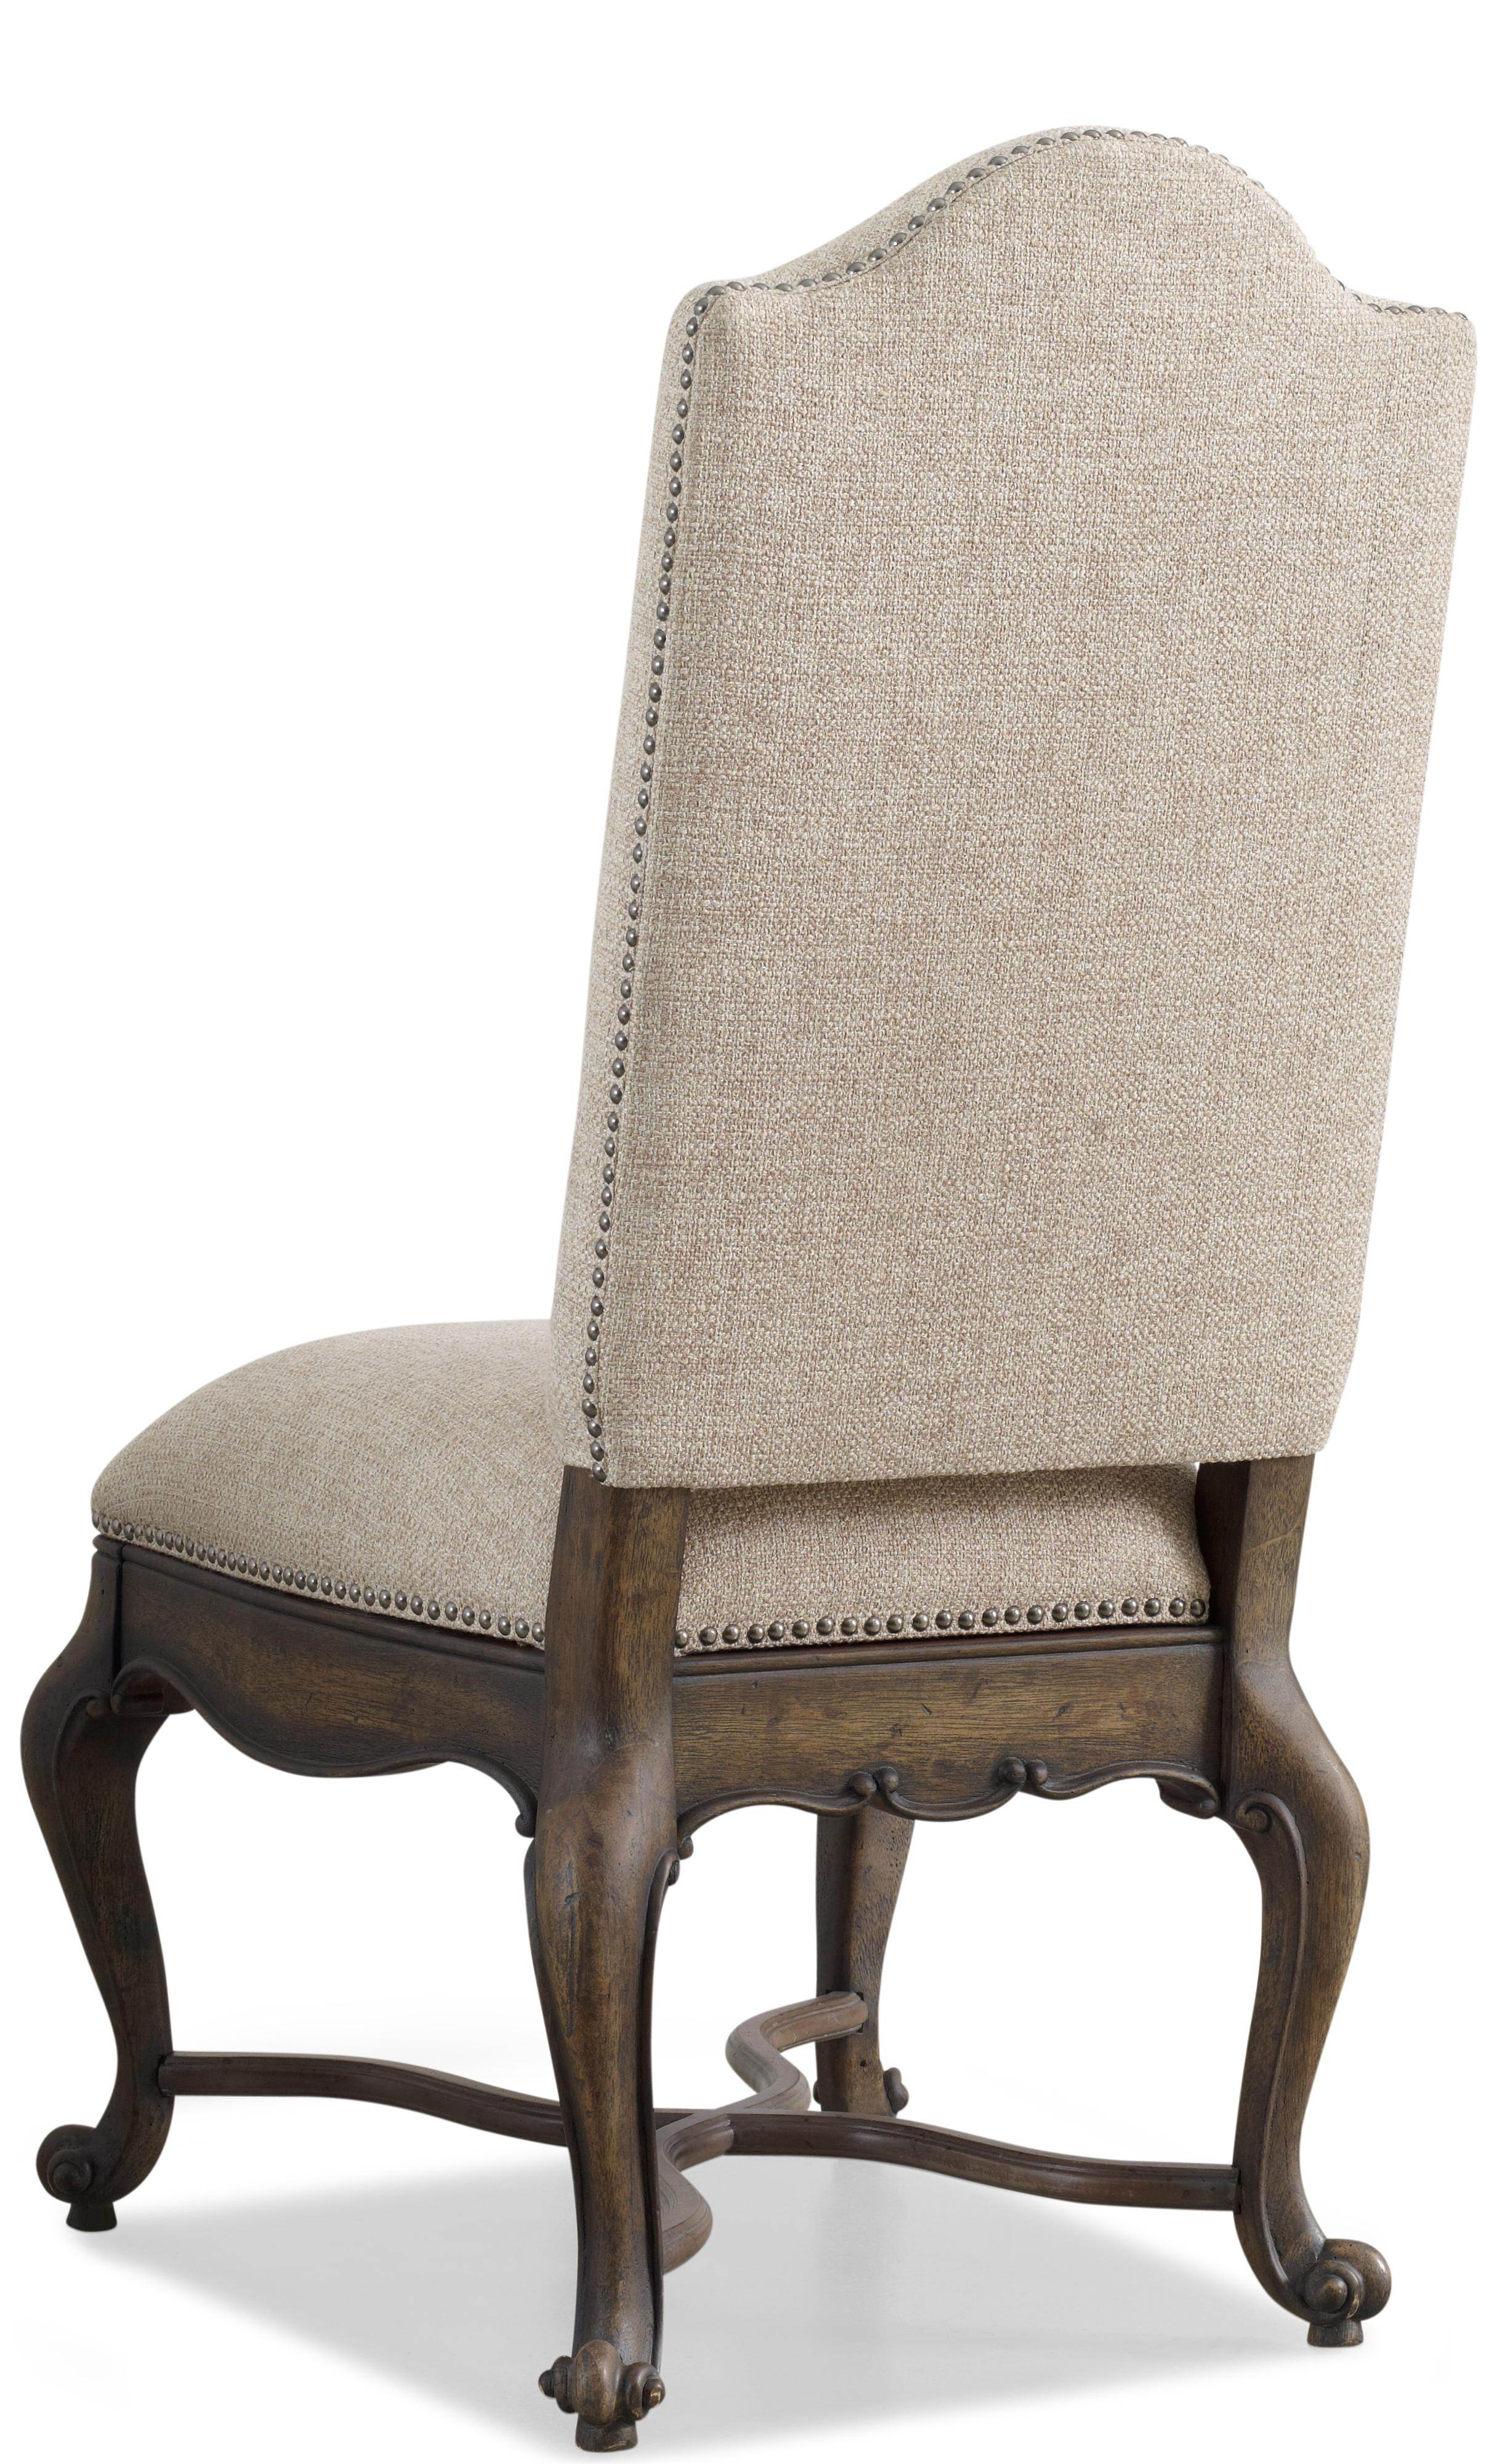 Hooker Furniture Rhapsody Upholstered Side Chair - Item Number: 5070-75510